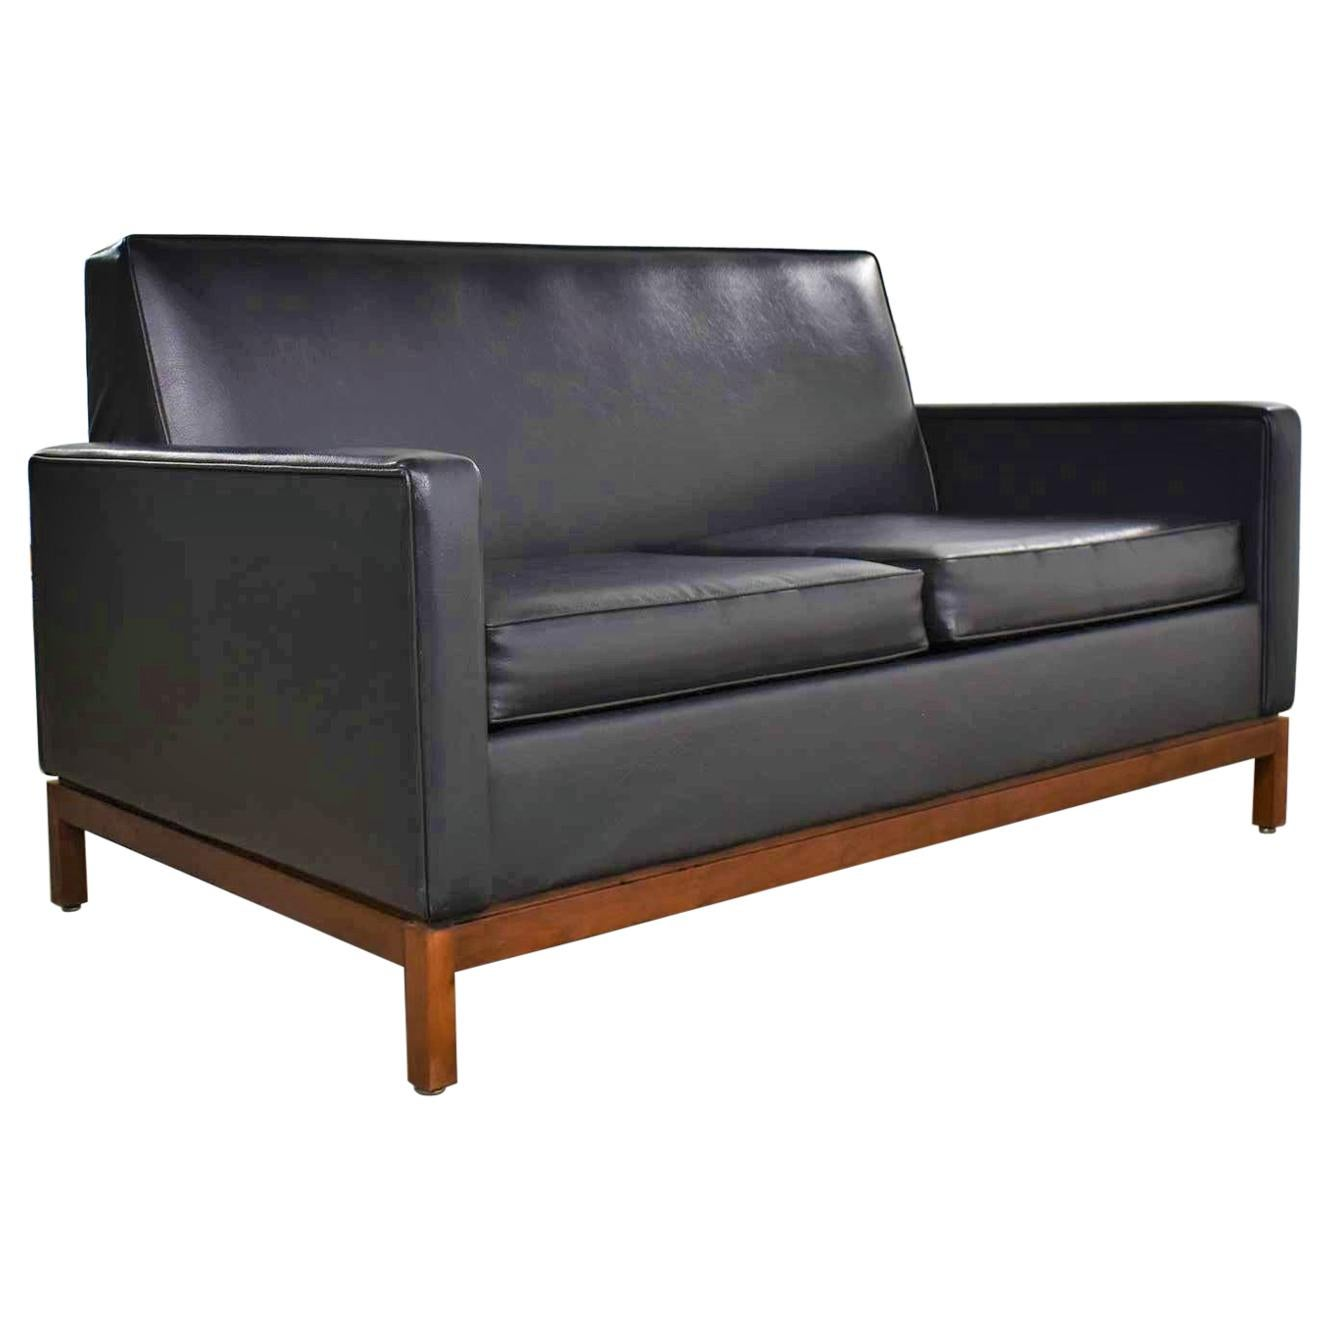 Mid-Century Modern Black Faux Leather Love Seat Sofa by Taylor Chair Co. Style D